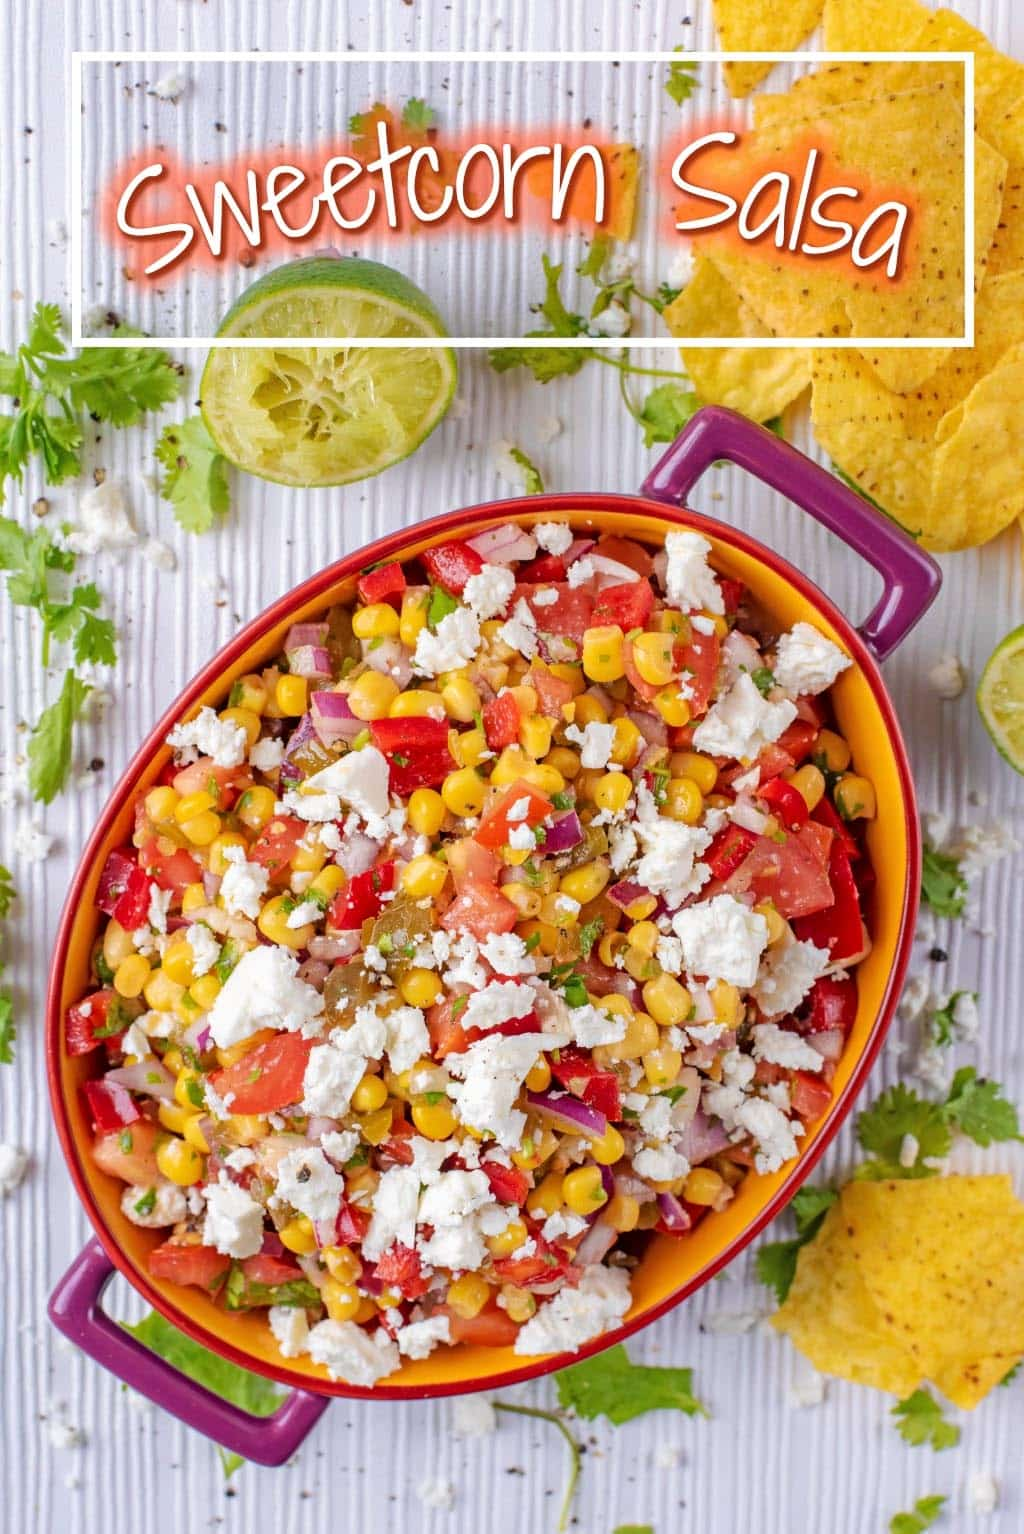 Healthy BBQ side dishes don't get much more colourful than this Sweetcorn Salsa. It's chunky, zesty and can be thrown together in less than 5 minutes. Serve it with some homemade burgers and use any leftovers in a grilled fish taco. This is a salsa that you need to make this summer.